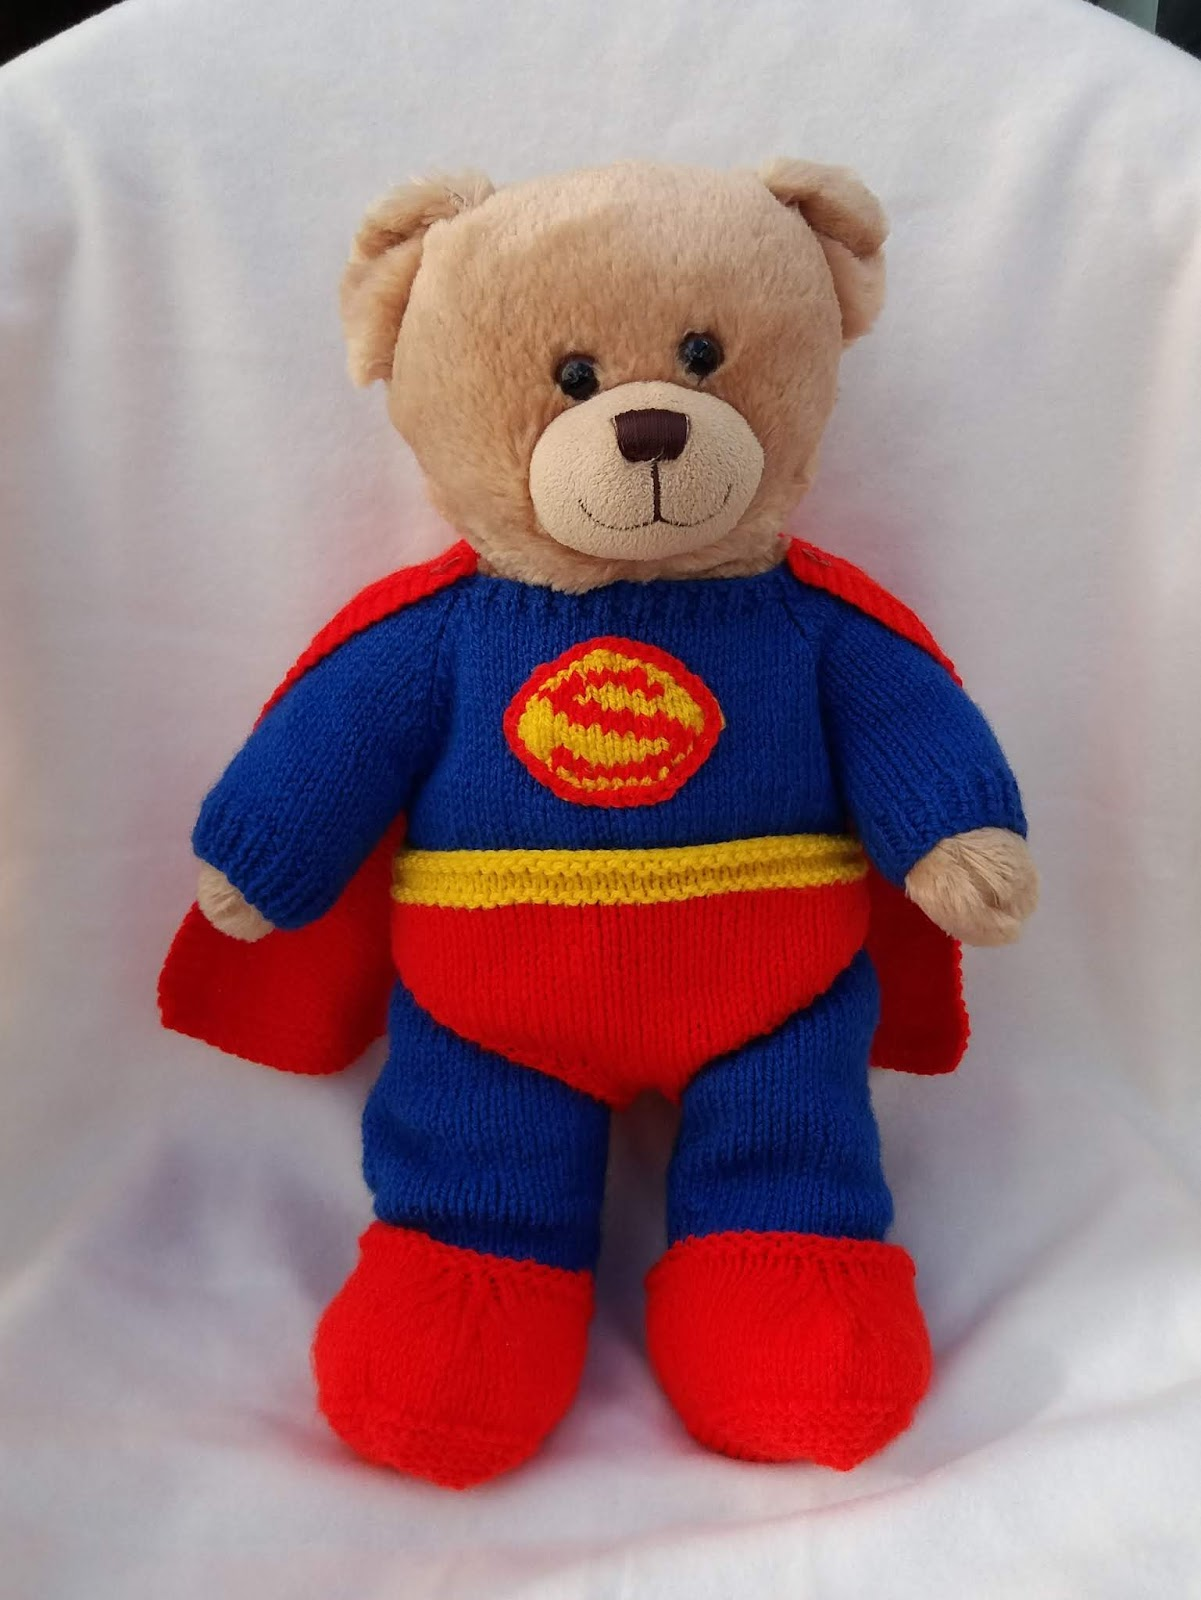 Linmary Knits Teddy Bear Patterns